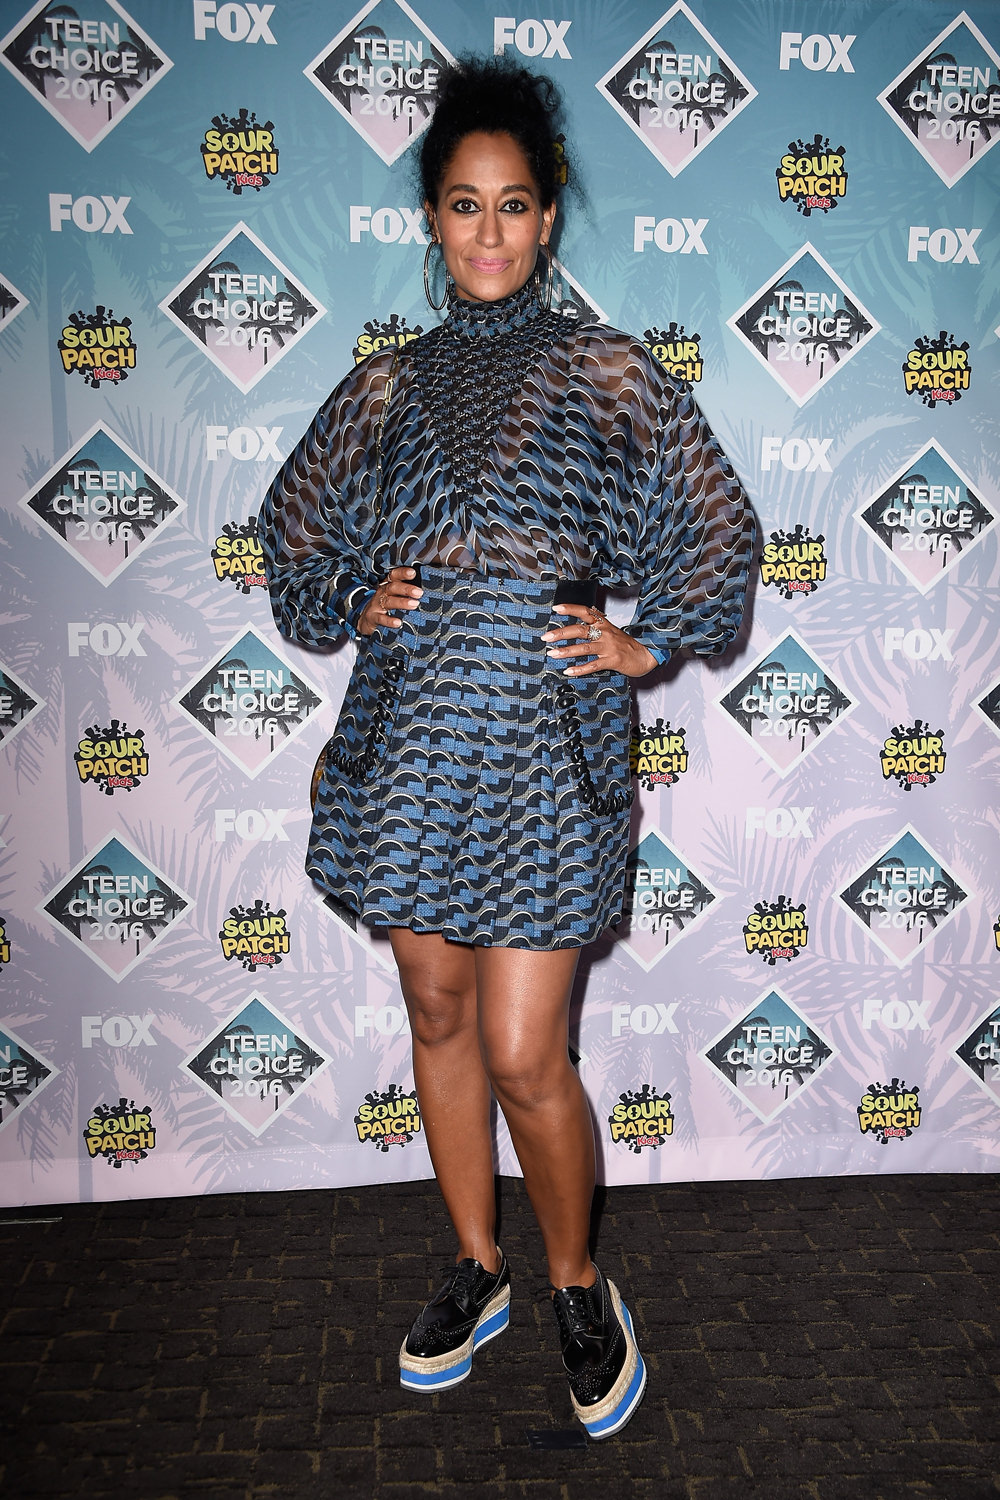 Tracee-Ellis-Ross-Teen-Choice-Awards-Red-Carpet-Fashion-Fendi-Tom-Lorenzo-Site-1.jpg